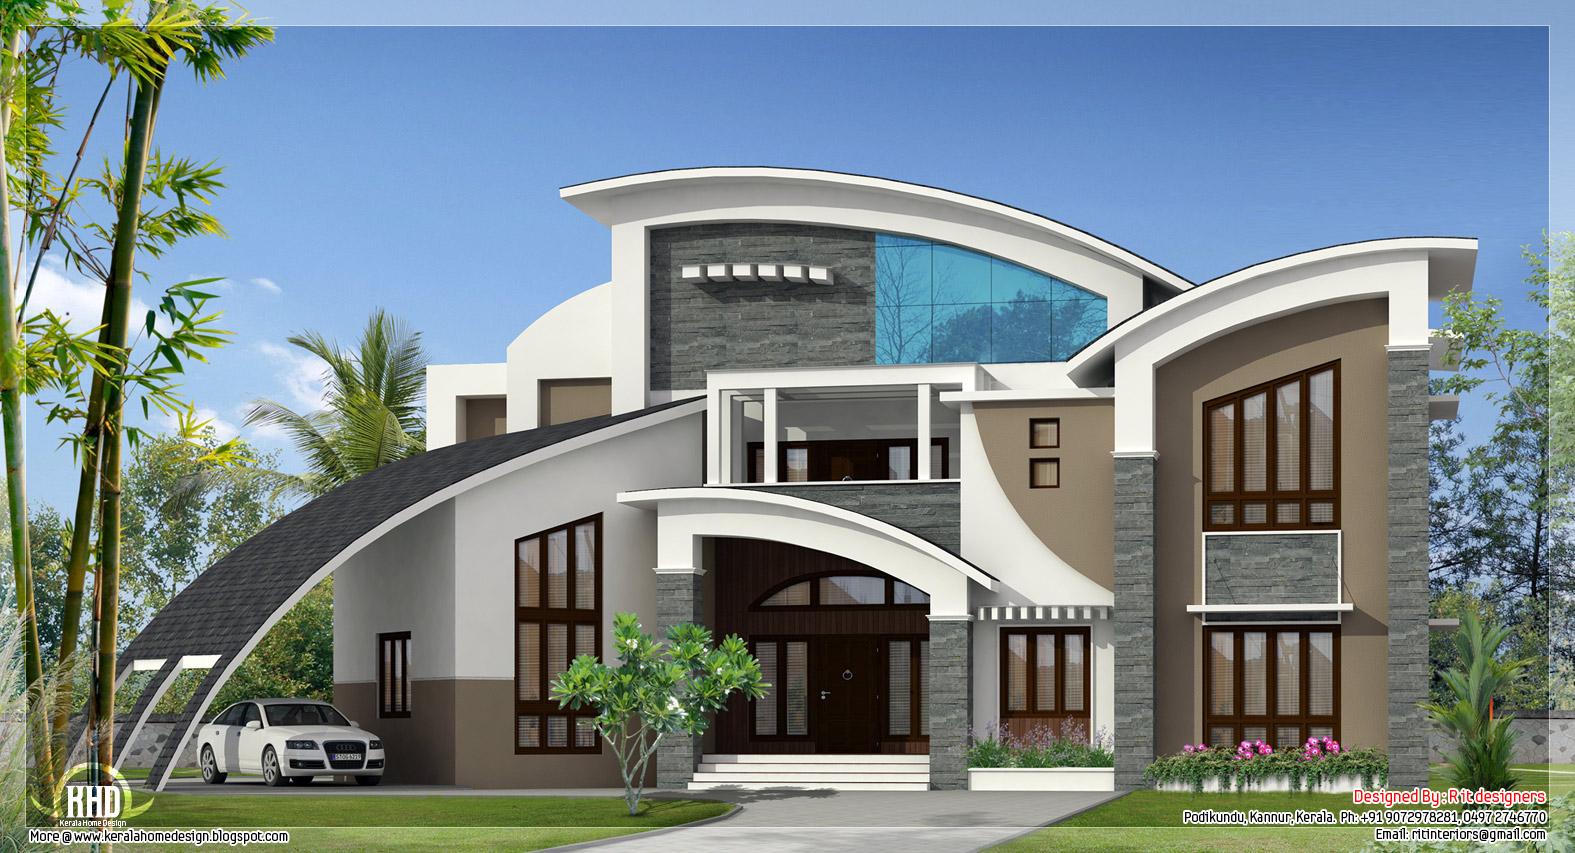 luxury kerala villa design by r it designers kannur kerala